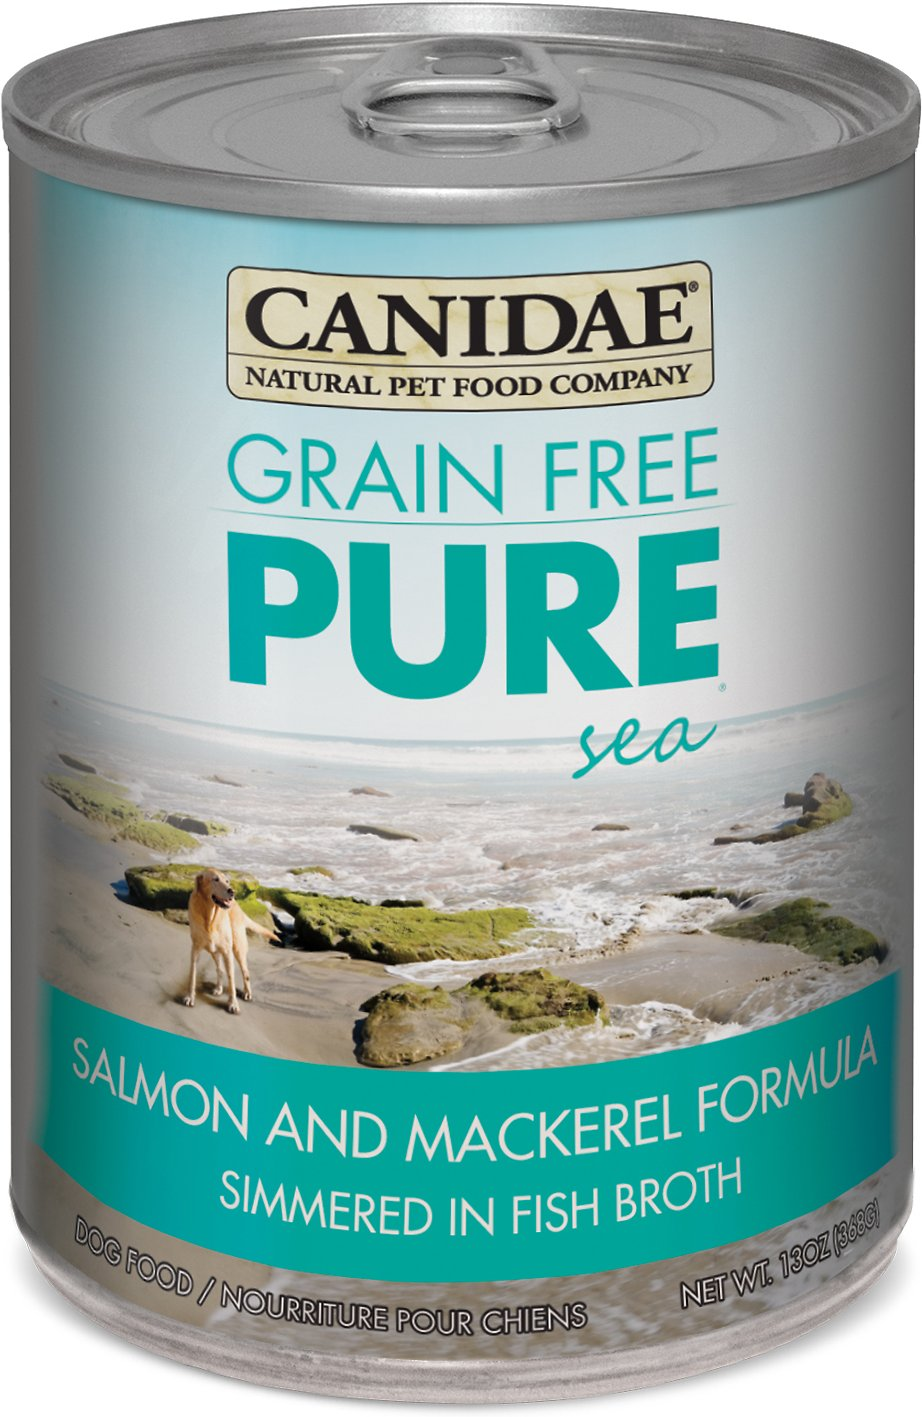 CANIDAE Grain-Free PURE Sea Salmon & Mackerel Formula Canned Dog Food, 13-oz, case of 12 Image